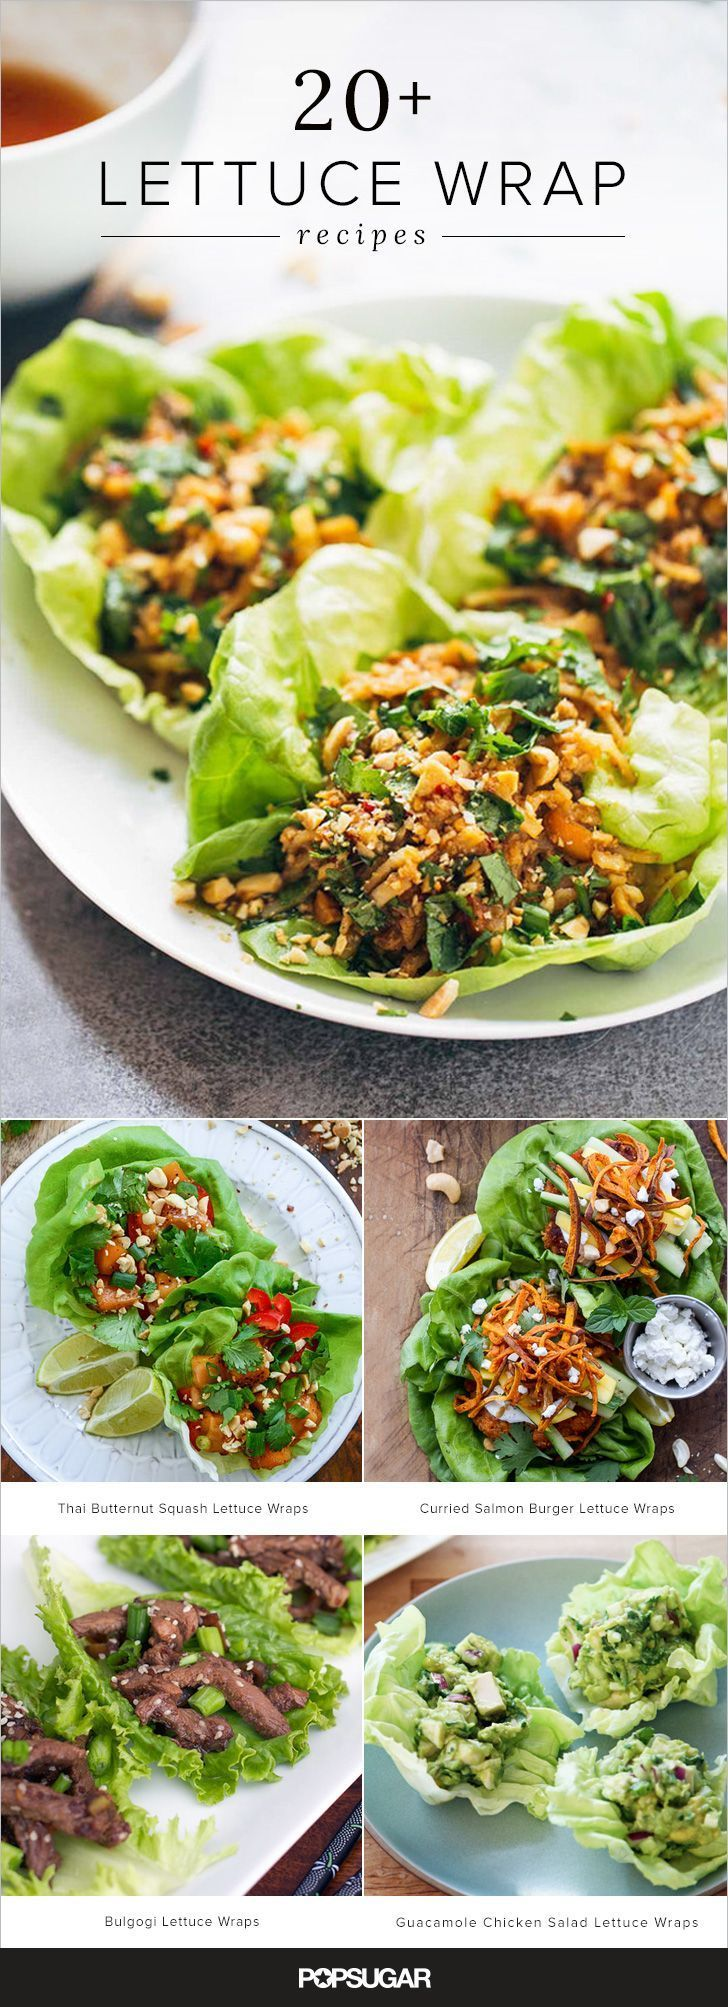 This collection of recipes draws inspiration from around the globe, including Korean-, Thai-, Mexican-, Greek-, and Vietnamese-inspired lettuce wrap options. Keep reading to find your new favorite way to freshen up dinner.